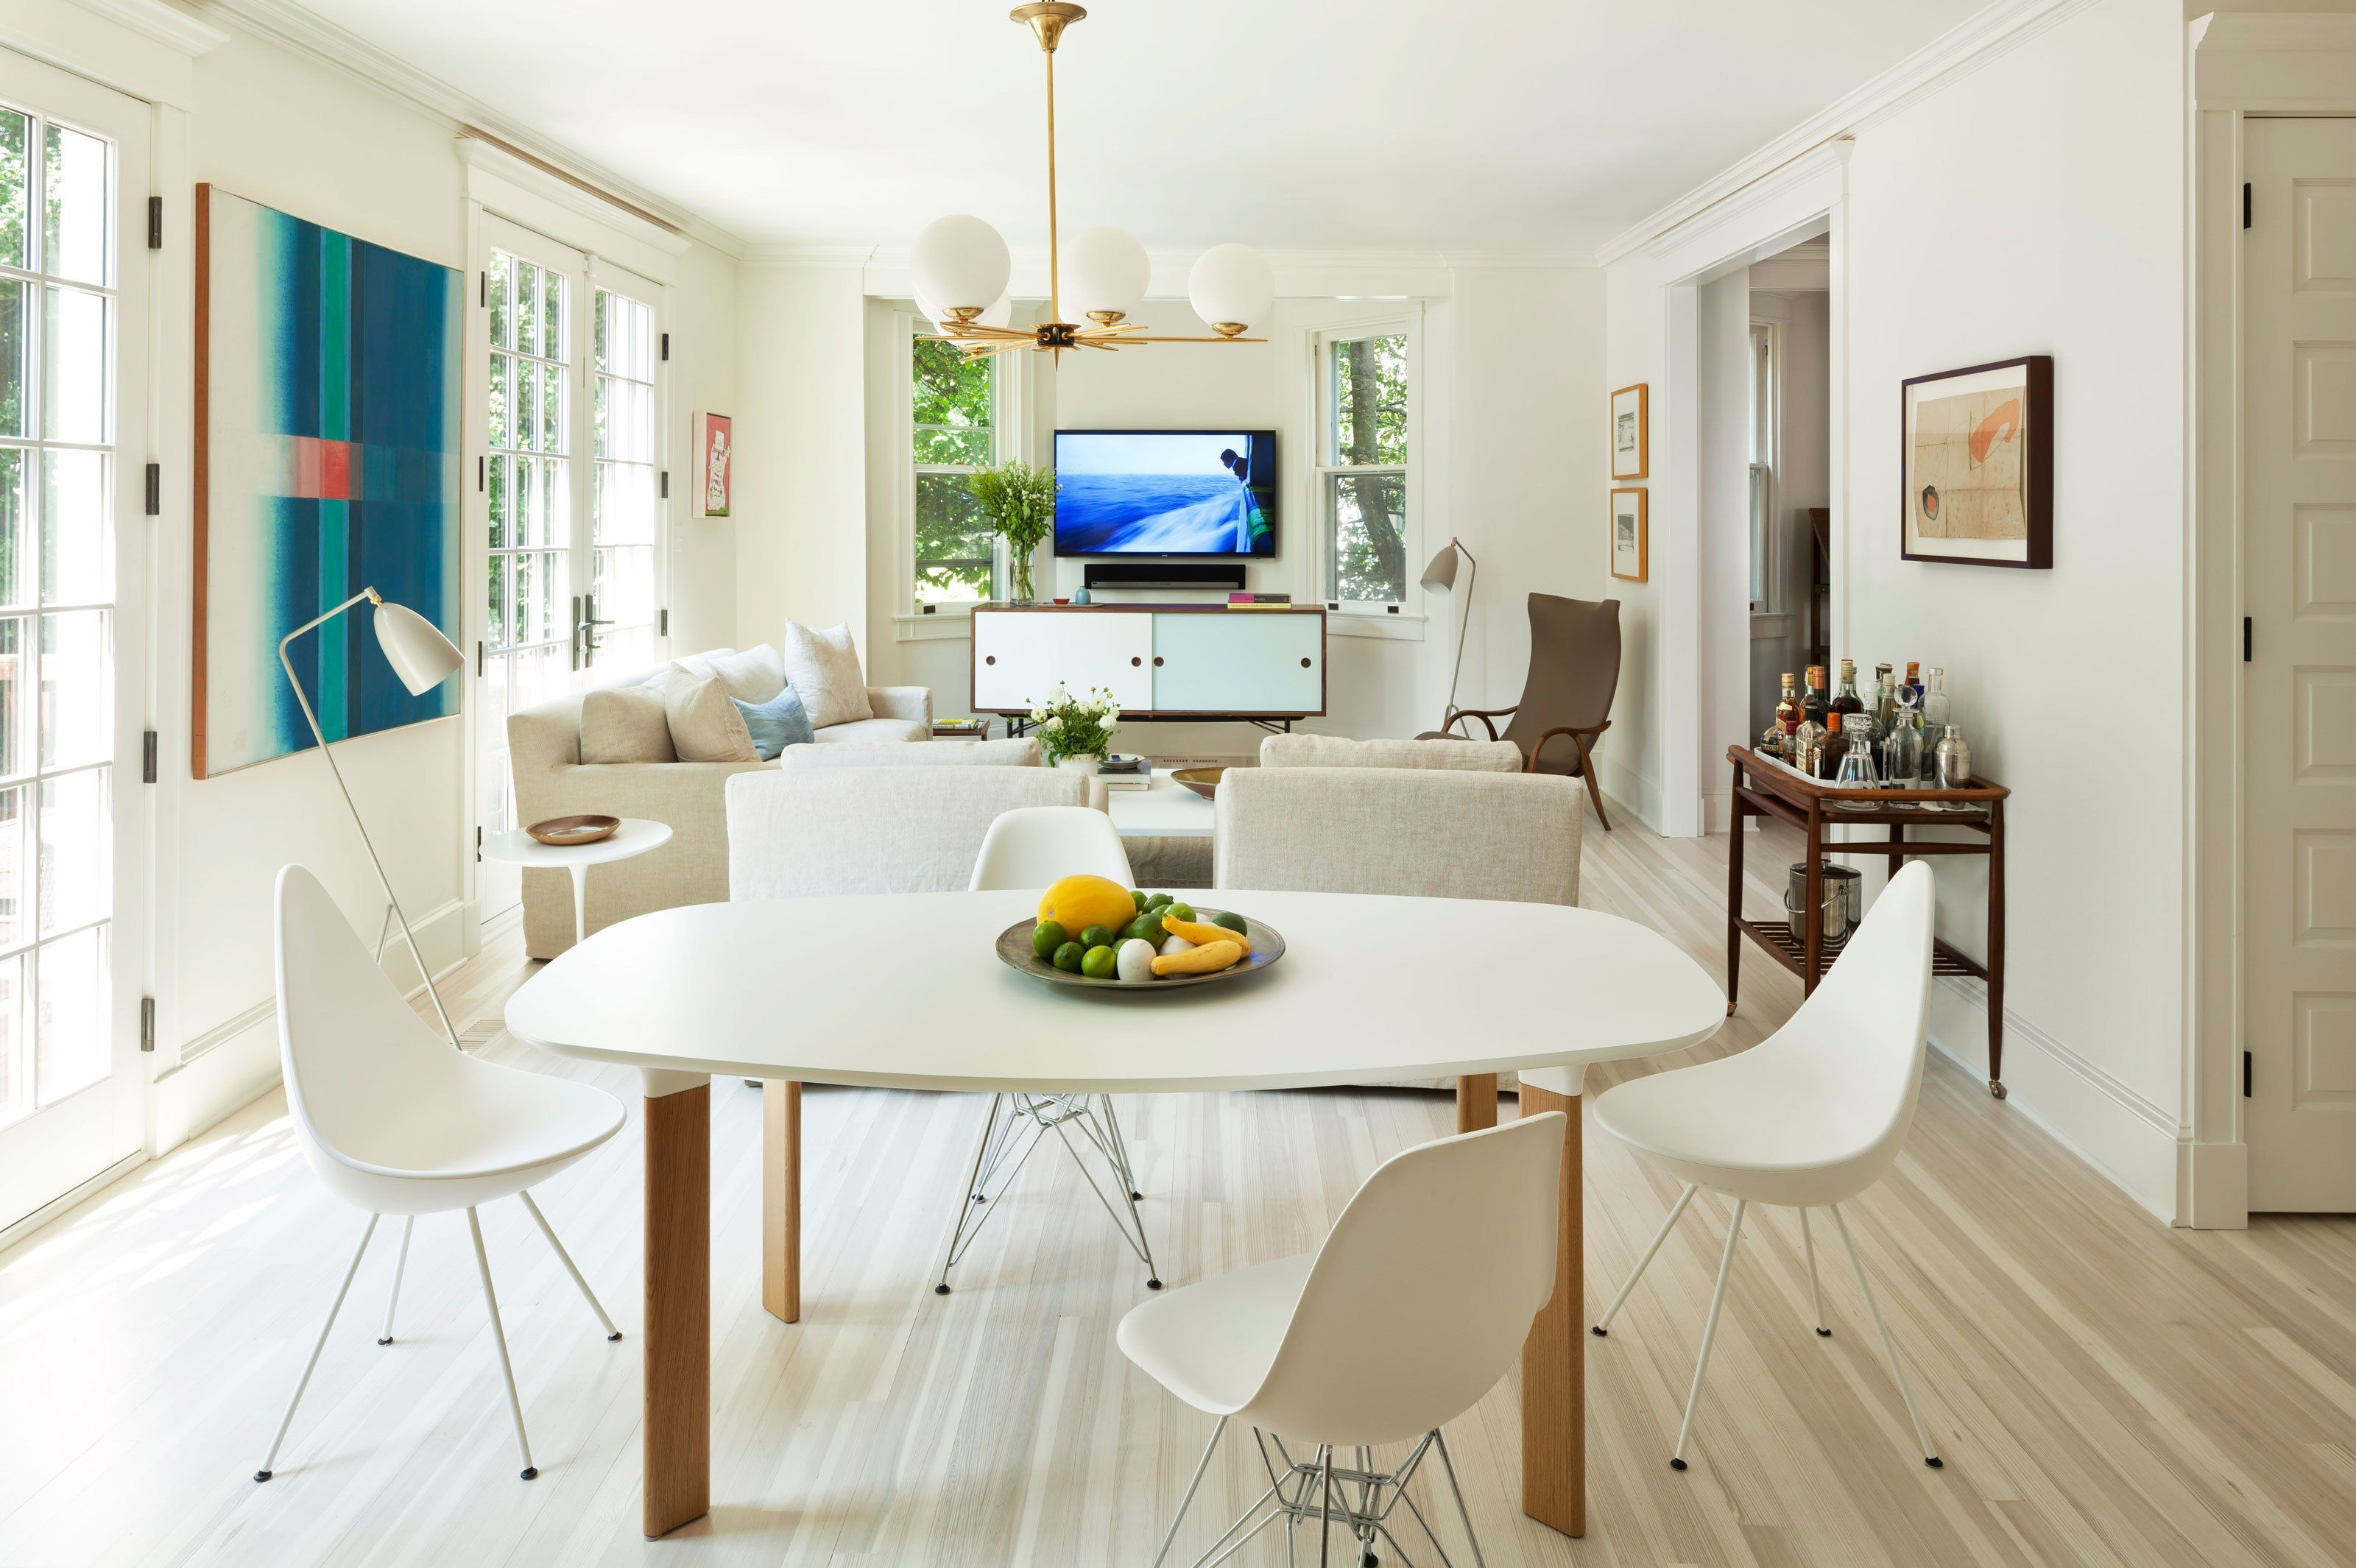 A 1905 Washington, D.C., Home That Blends American Tradition with ...